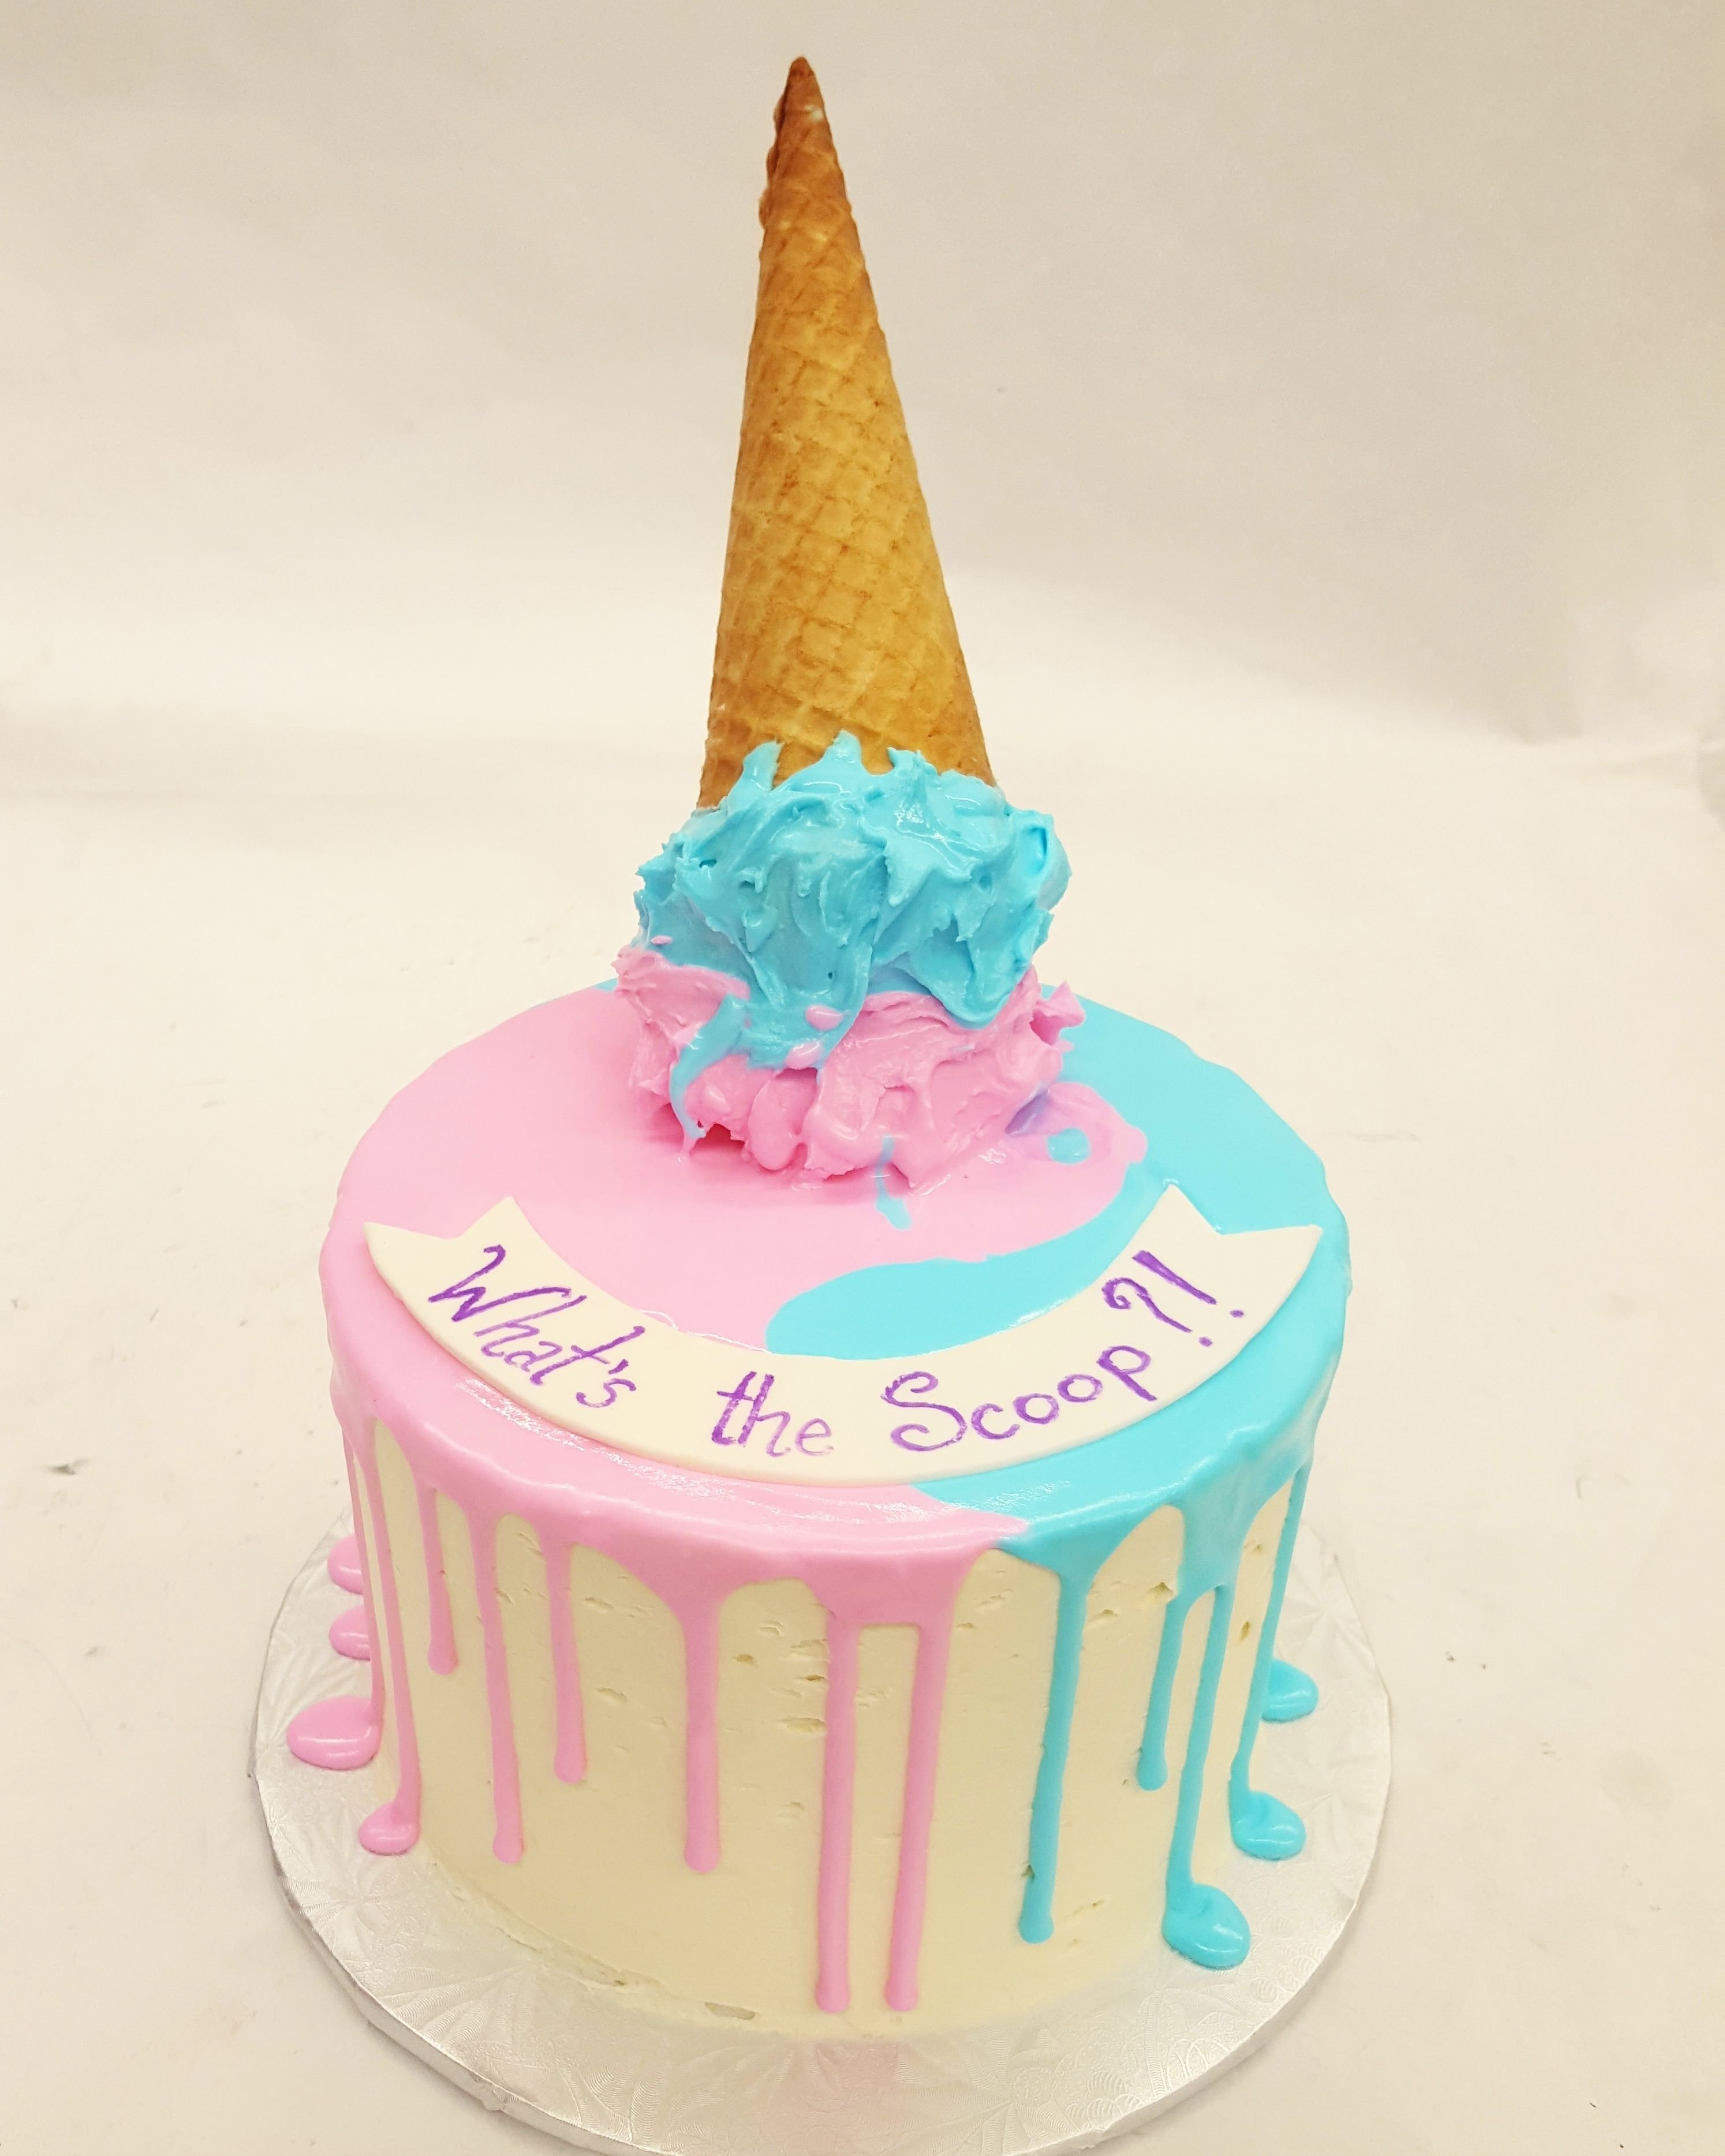 10 Beautiful Baby Gender Reveal Cake Ideas an ice cream themed gender reveal cake whats the scoop party 2020